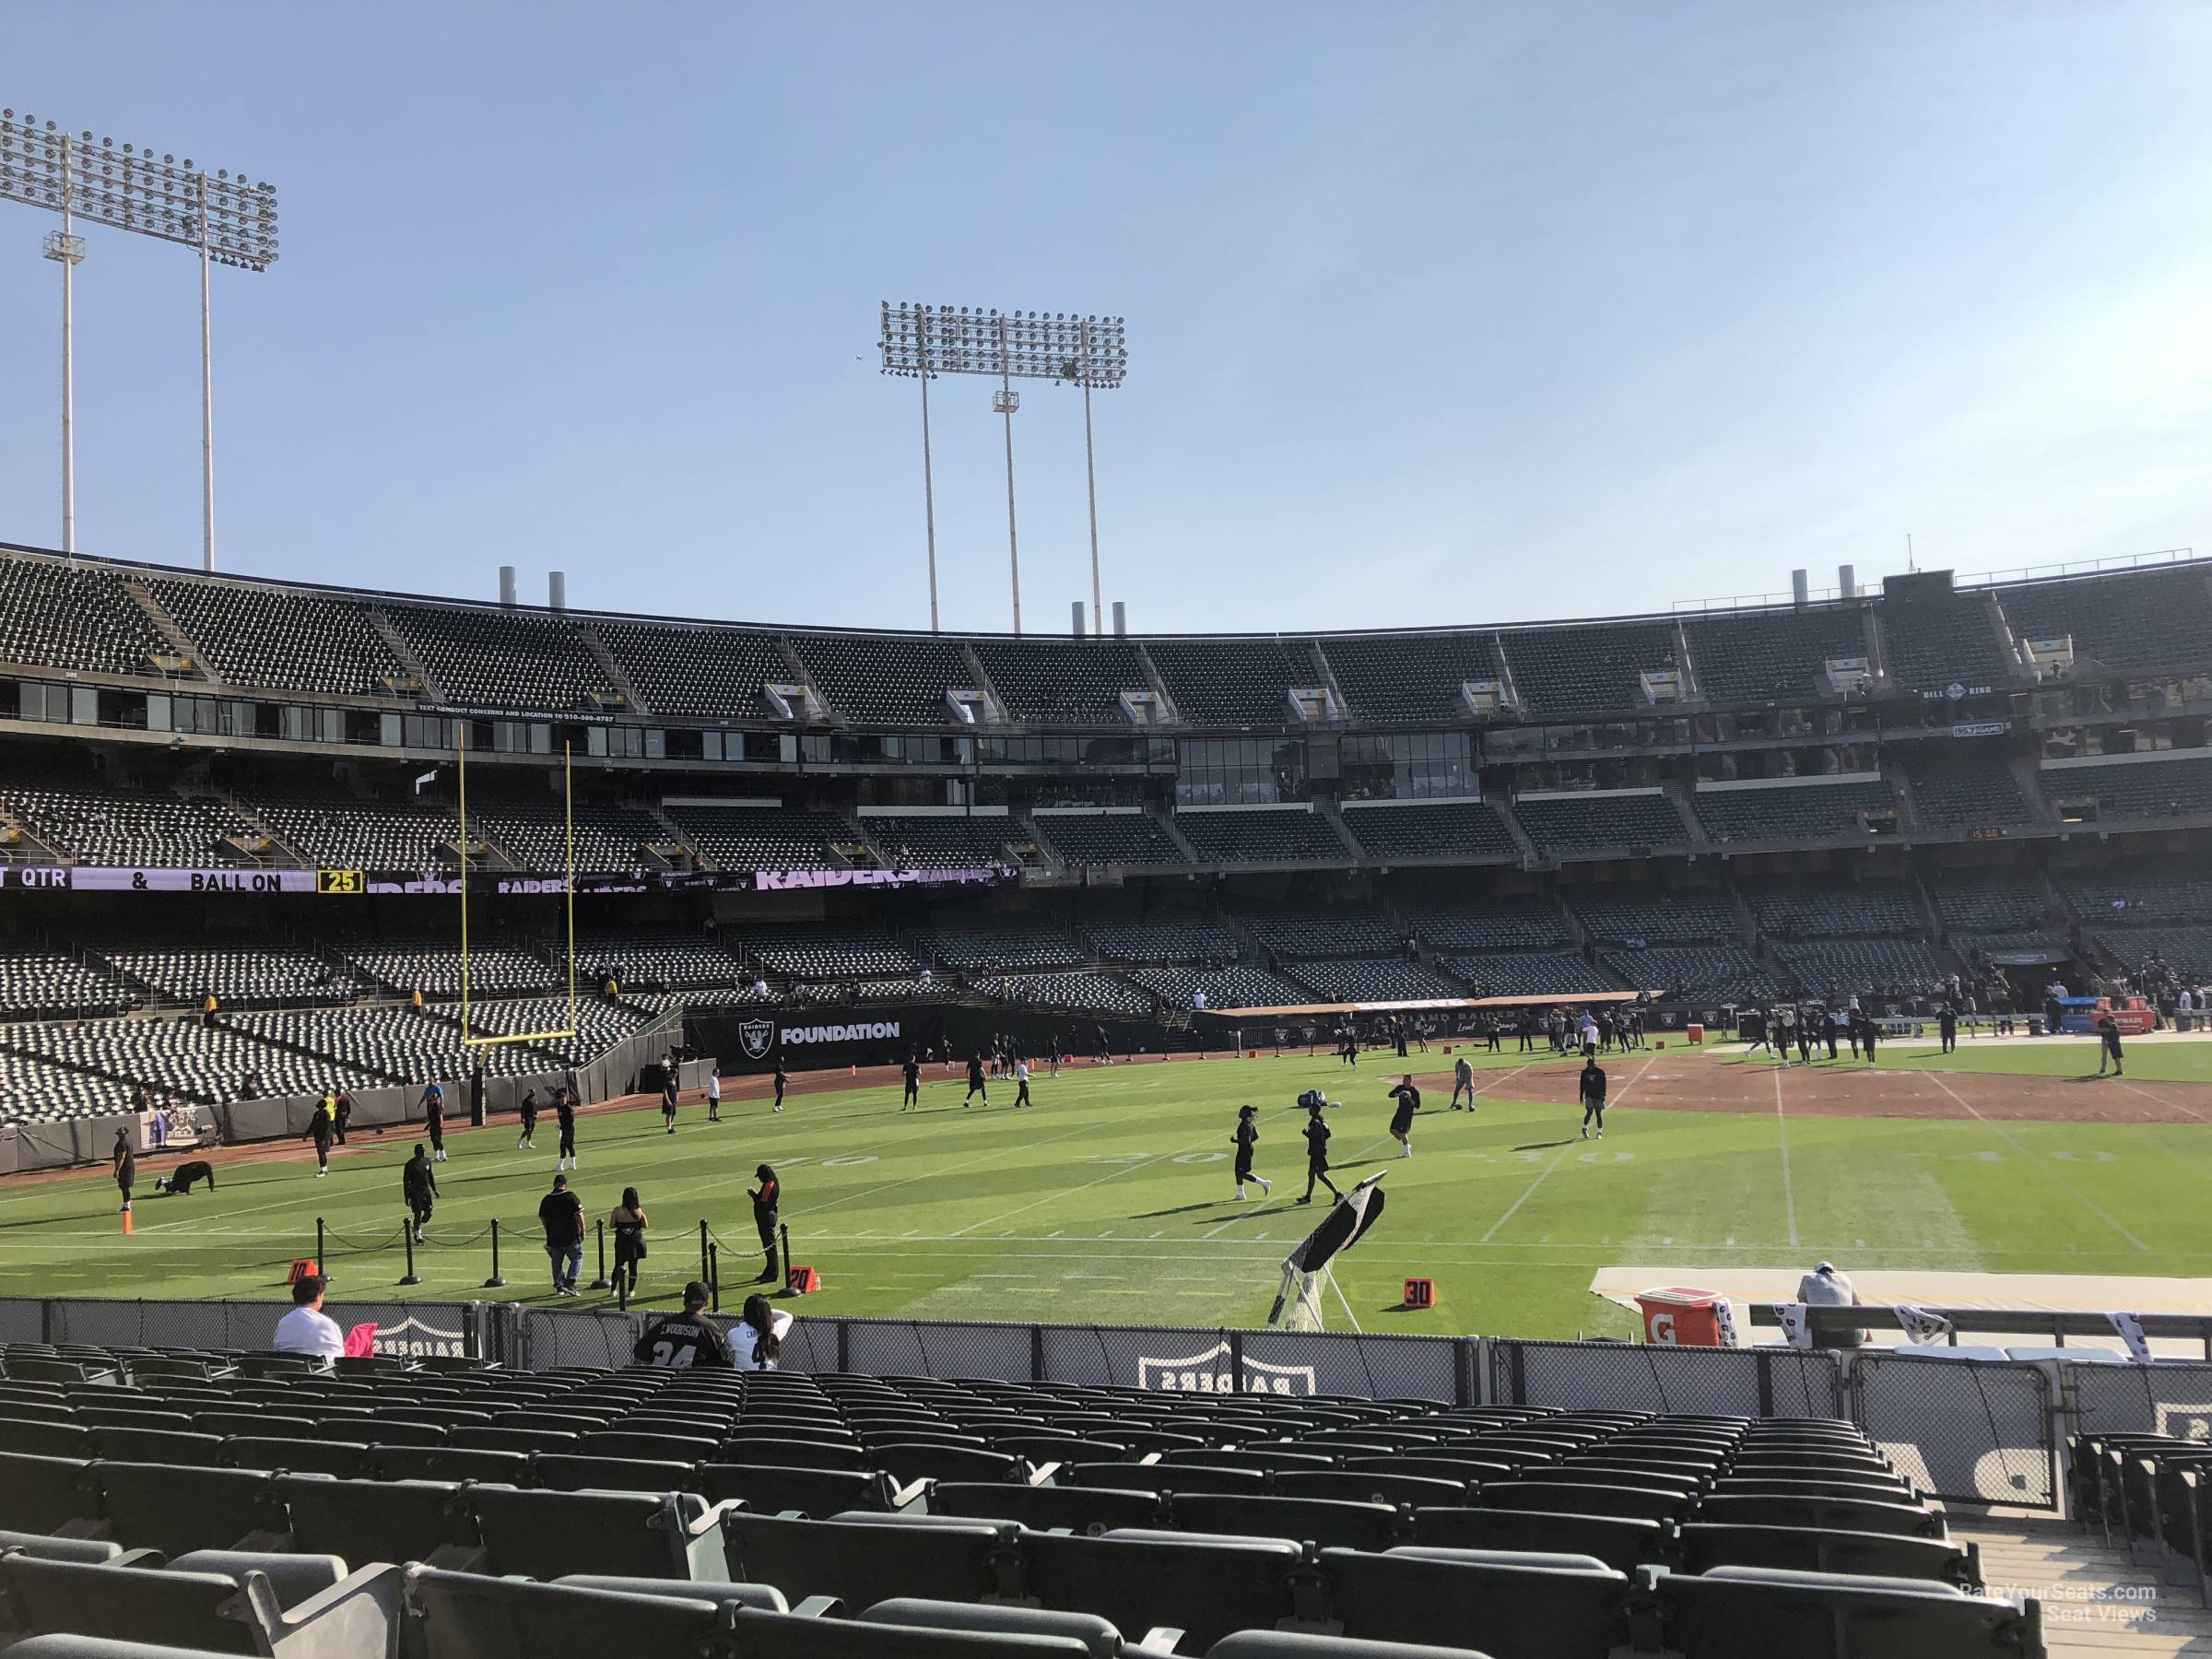 Oakland Raiders Seat View for Oakland Coliseum Section 143, Row 15